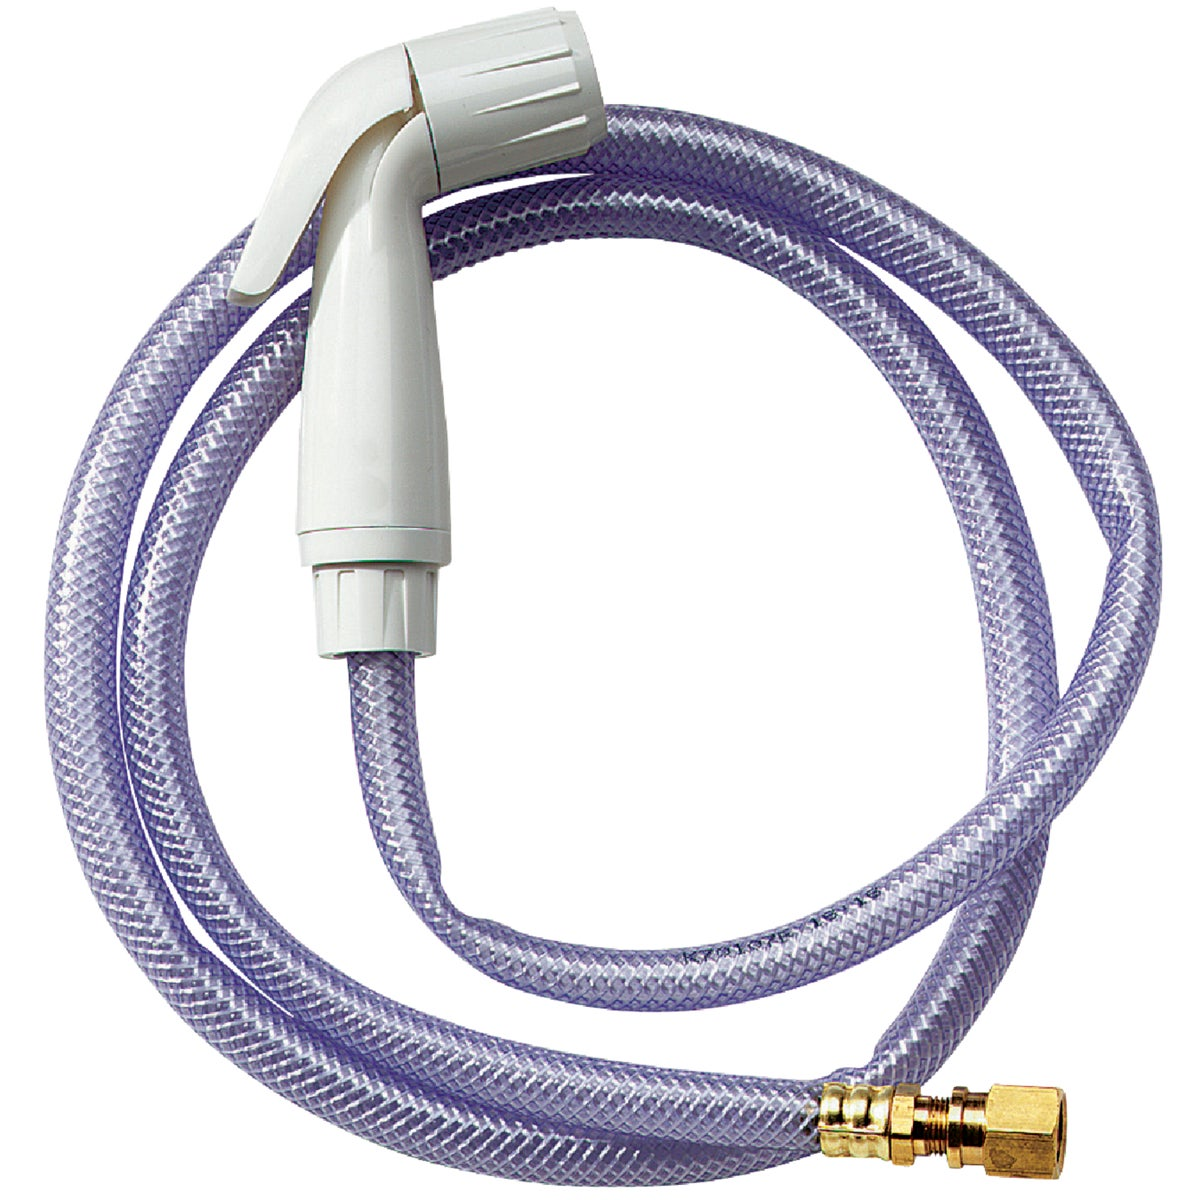 4' WHT KITCHN SPRAY HOSE - W-1317LF by Do it Best